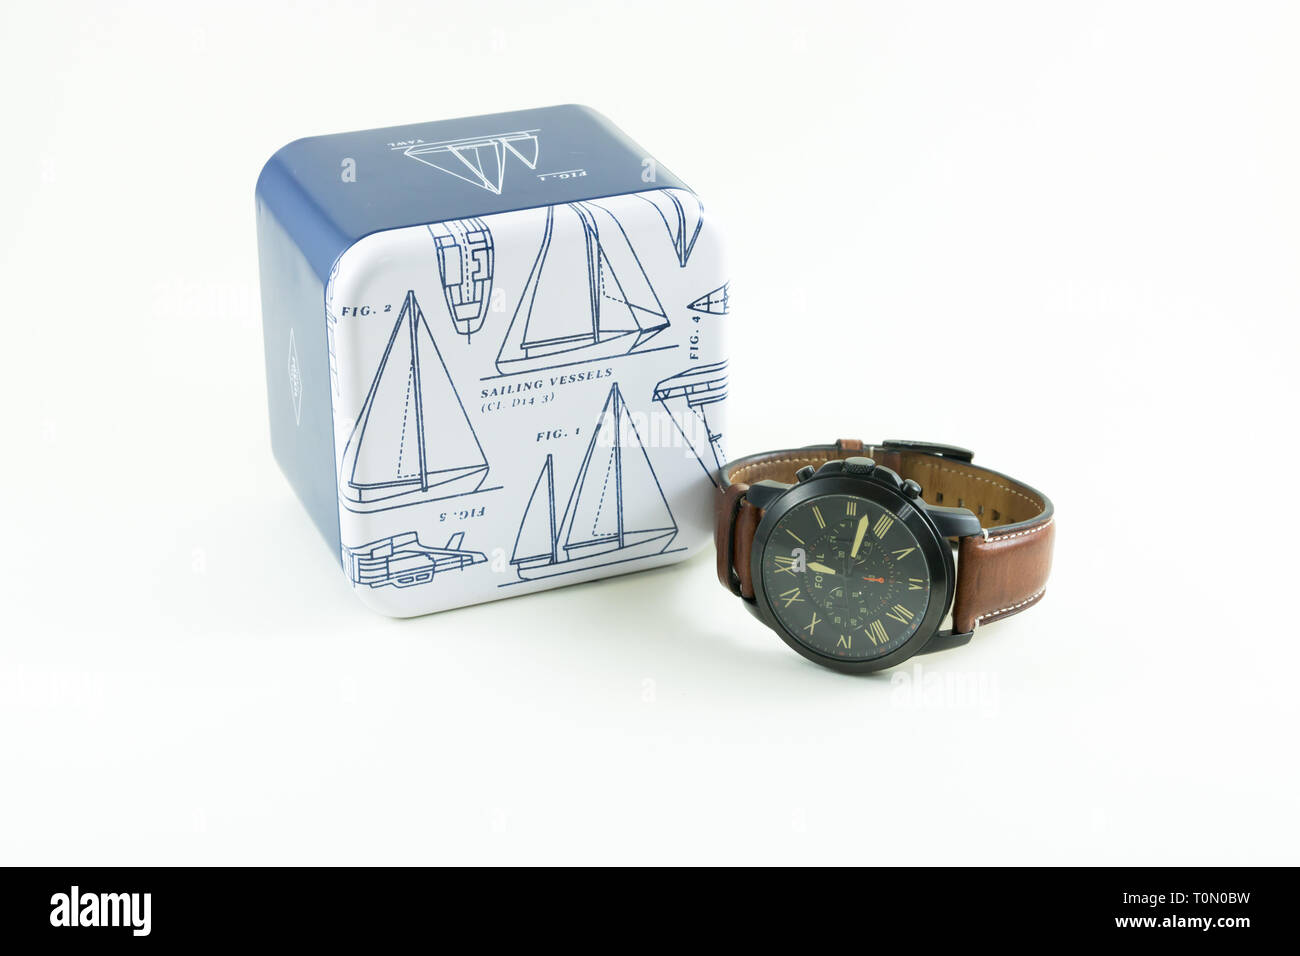 Photo of Fossil men watch isolated on a white background. Fossil Group, Inc. is an American fashion designer and manufacturer of watches. - Stock Image